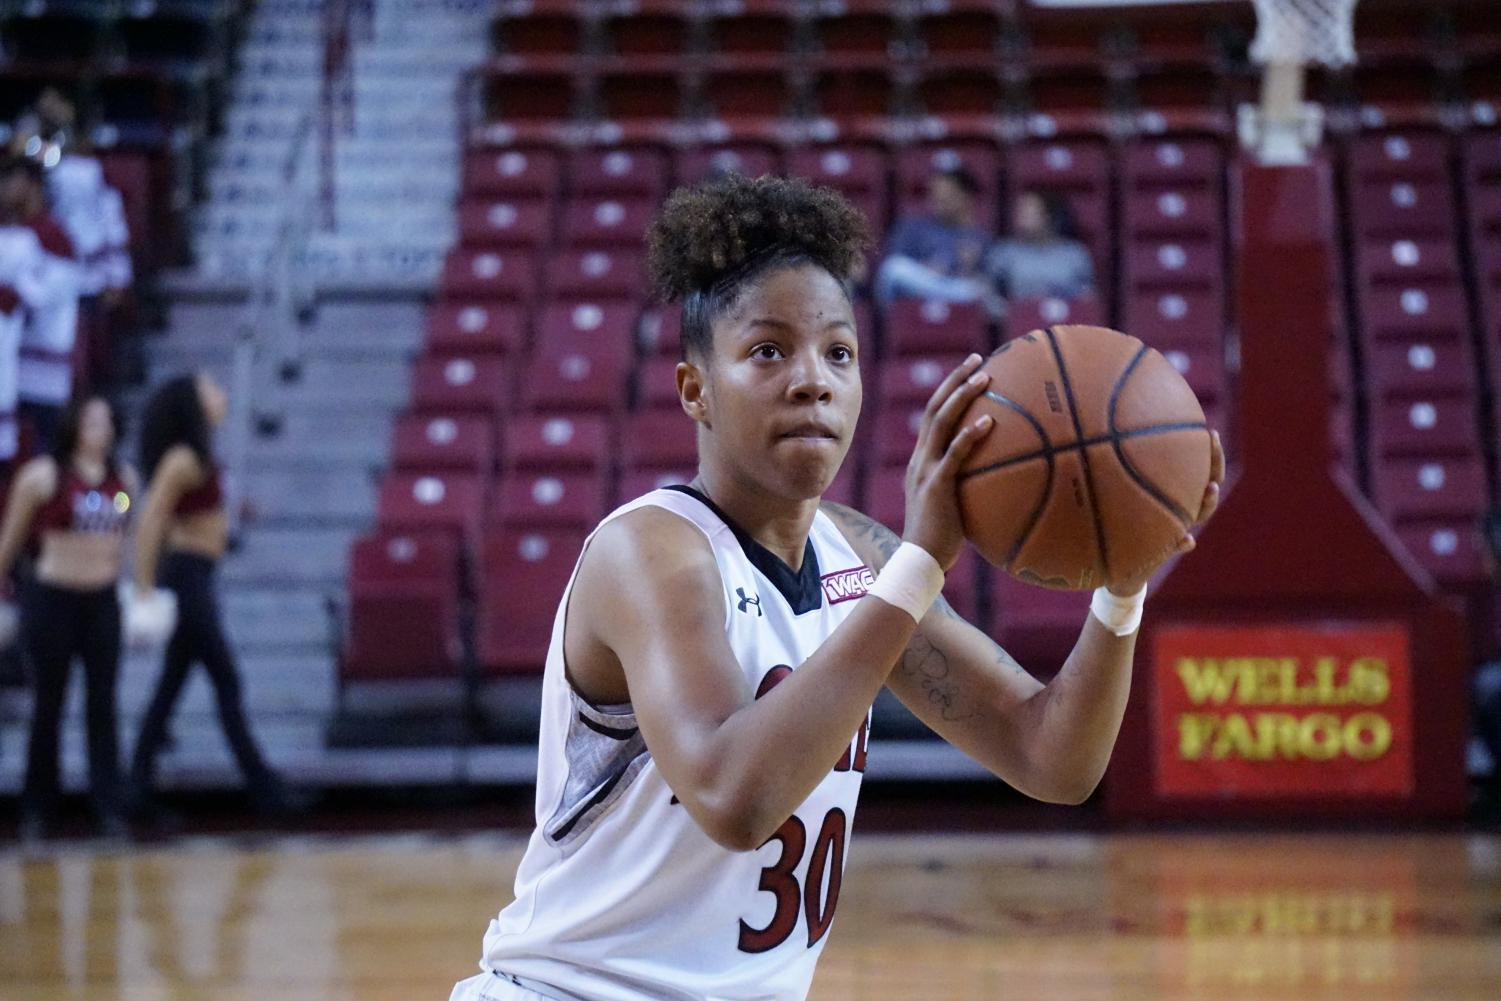 Gia Pack kicks off the WAC Tournament with an efficient 29 point performance in NMSU's decisive win over Chicago State.